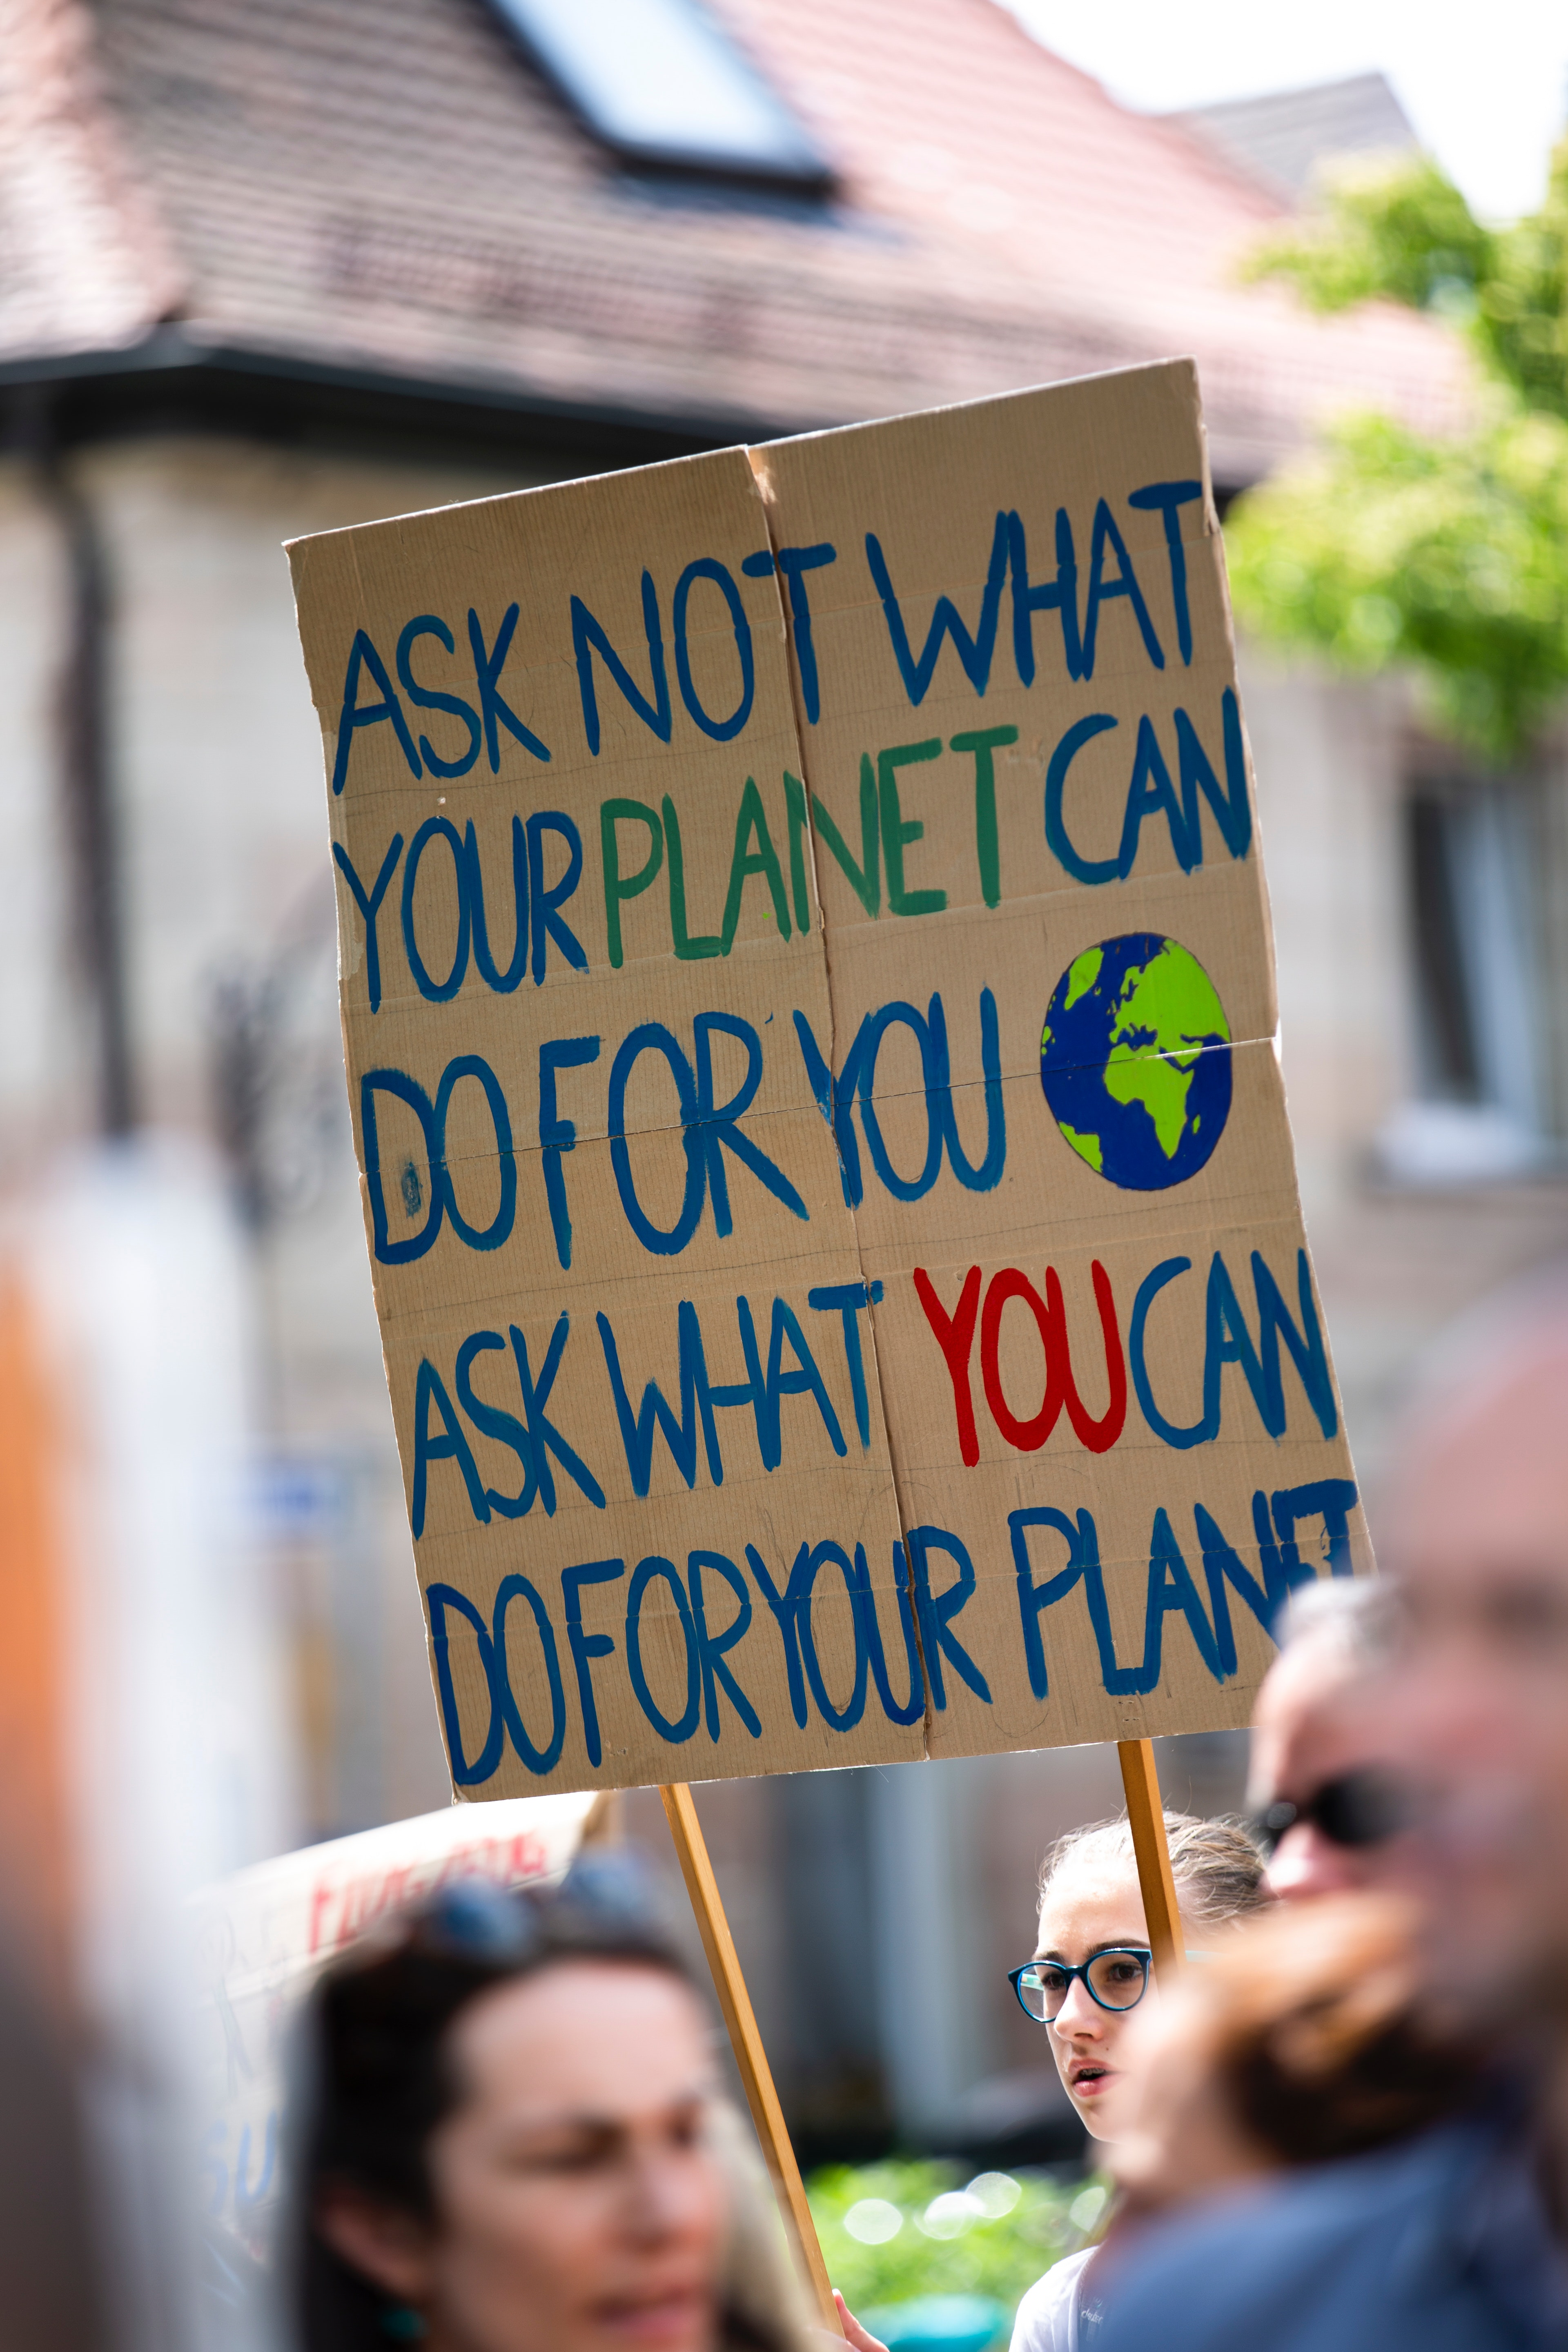 A remote worker environmental protester with a placard asking us what we can do to help save the planet and solve climate change.